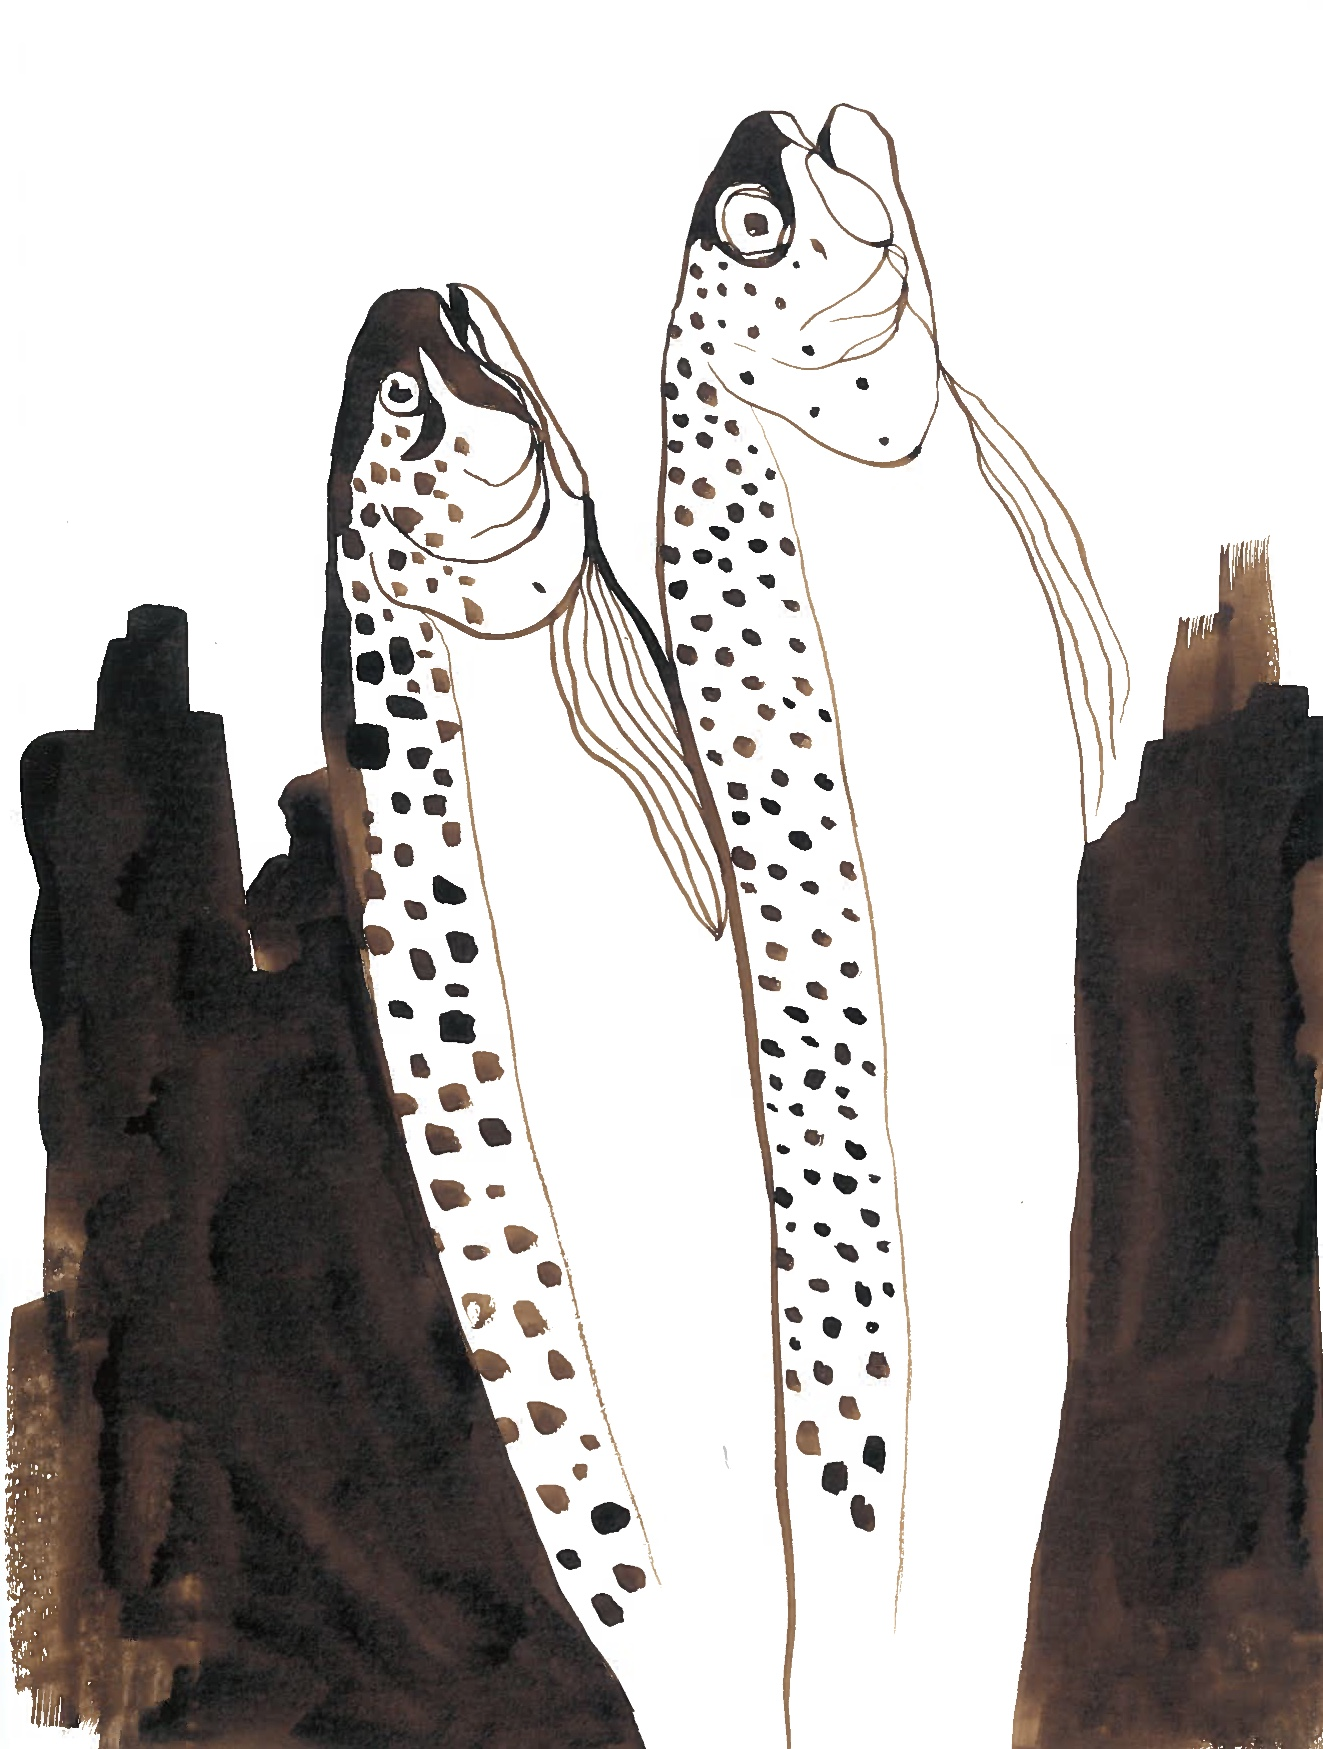 rapid dead fish ink painting - august, 2018